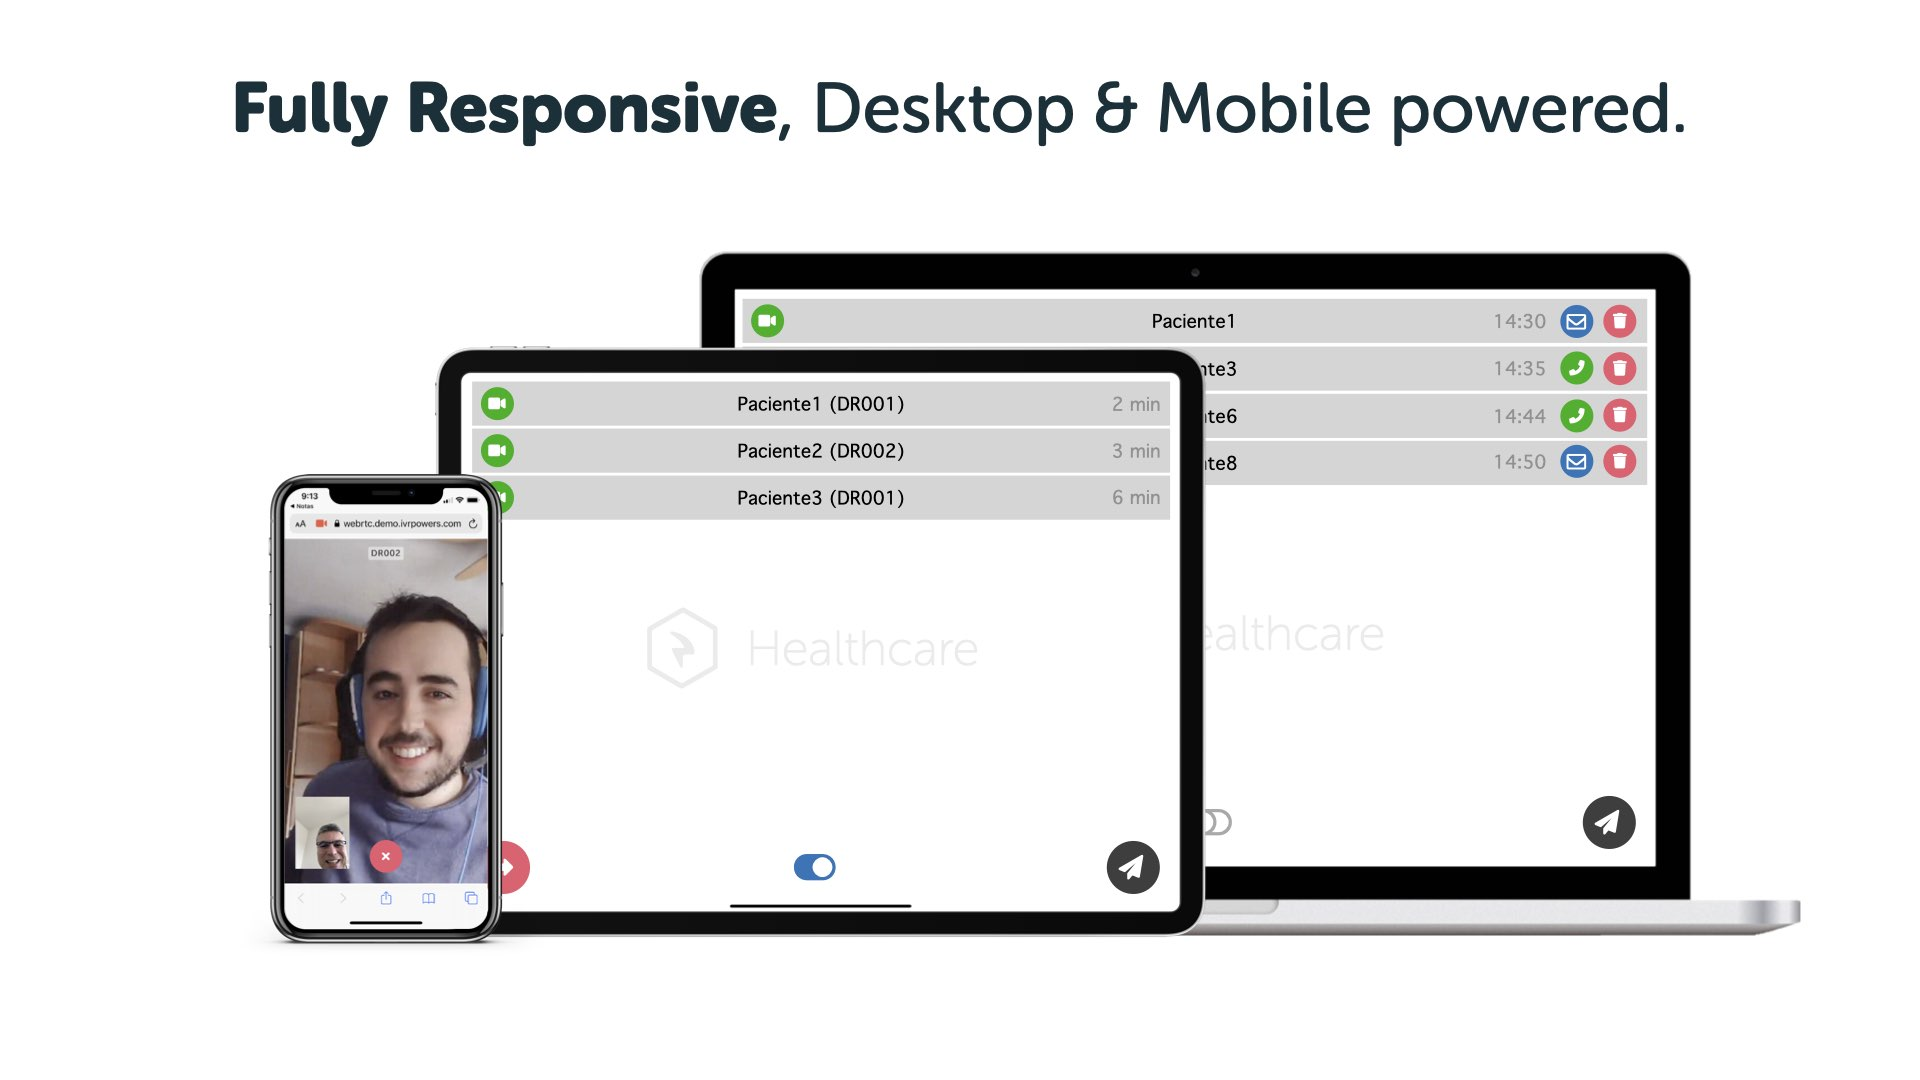 Virgo Healthcare - Fully Responsive